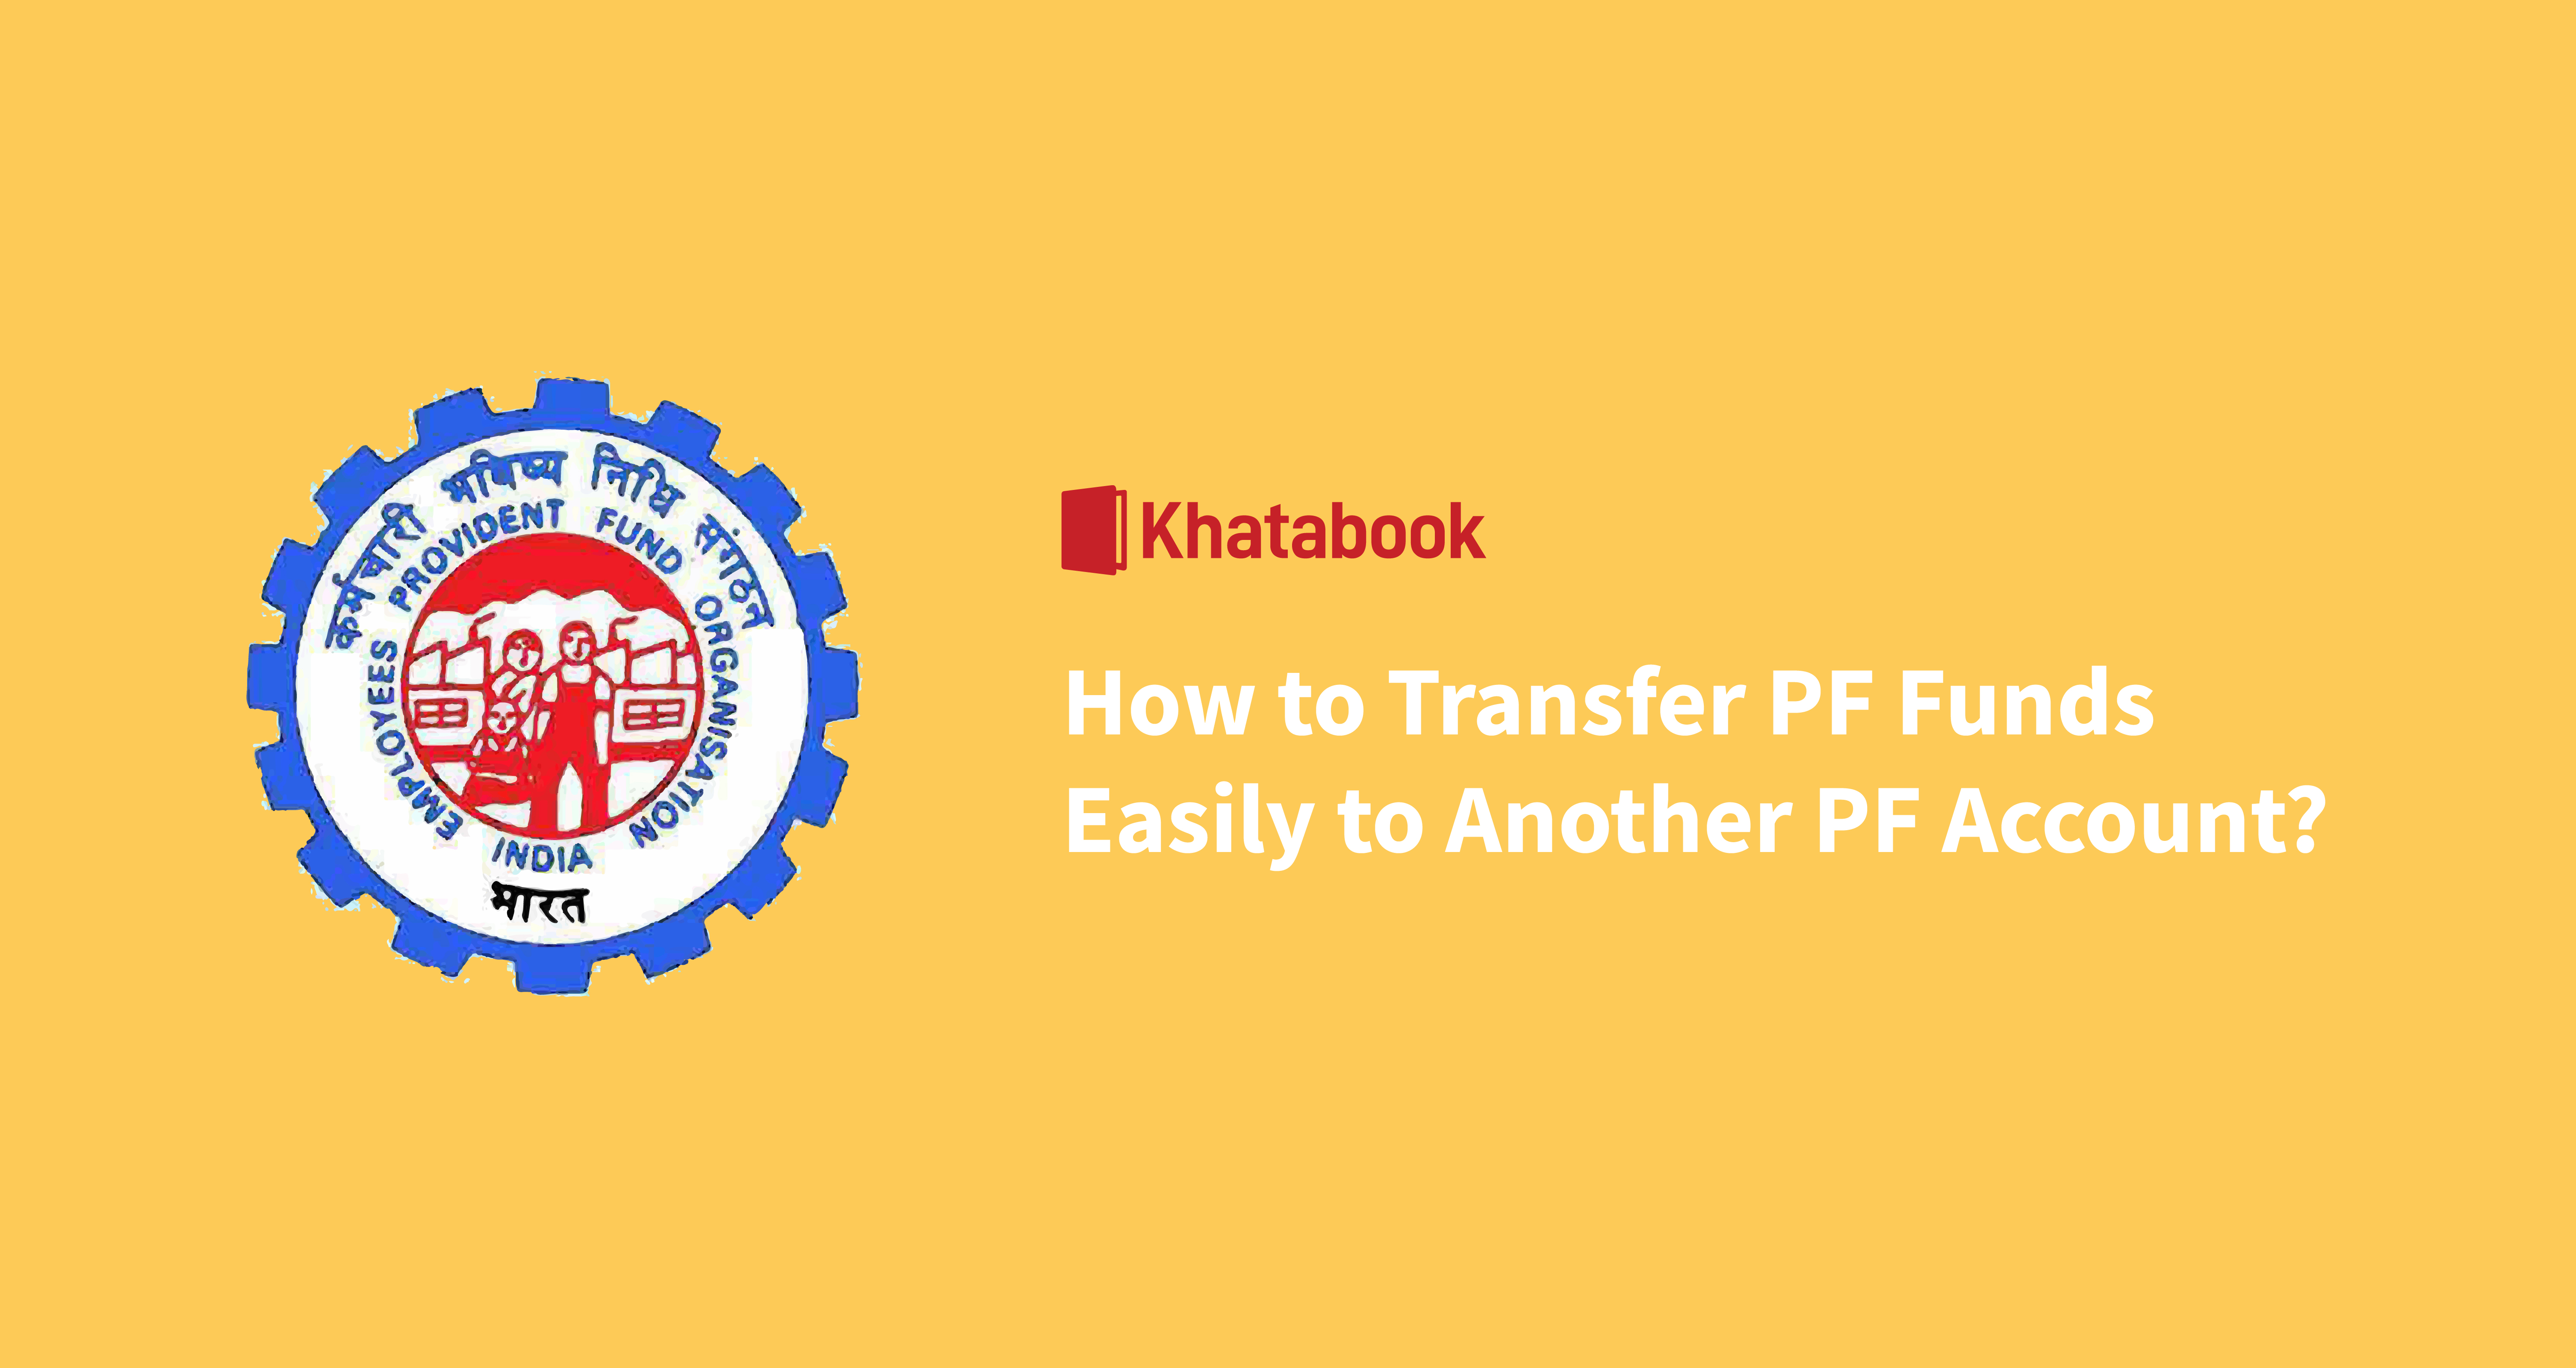 How To Transfer PF Funds To Another PF Account Easily